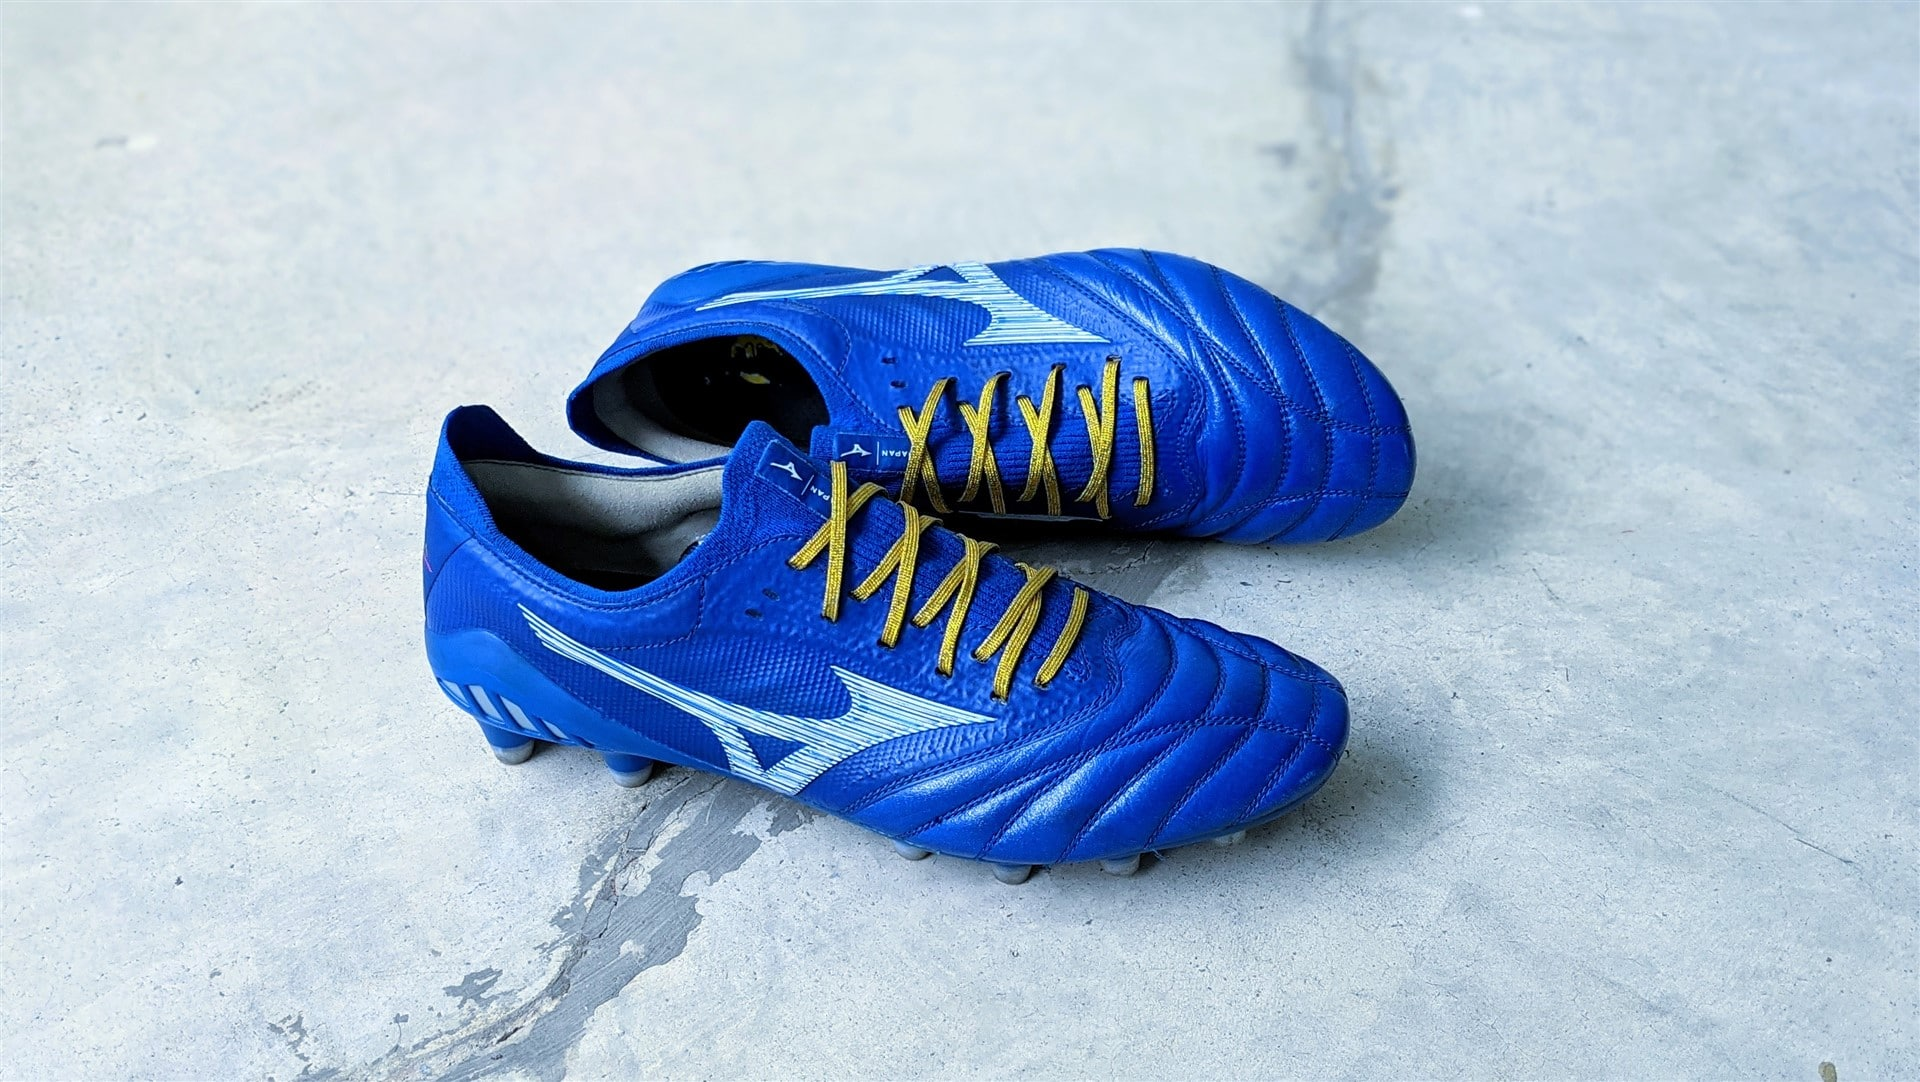 mizuno morelia neo 3 beta football boots soccer cleats